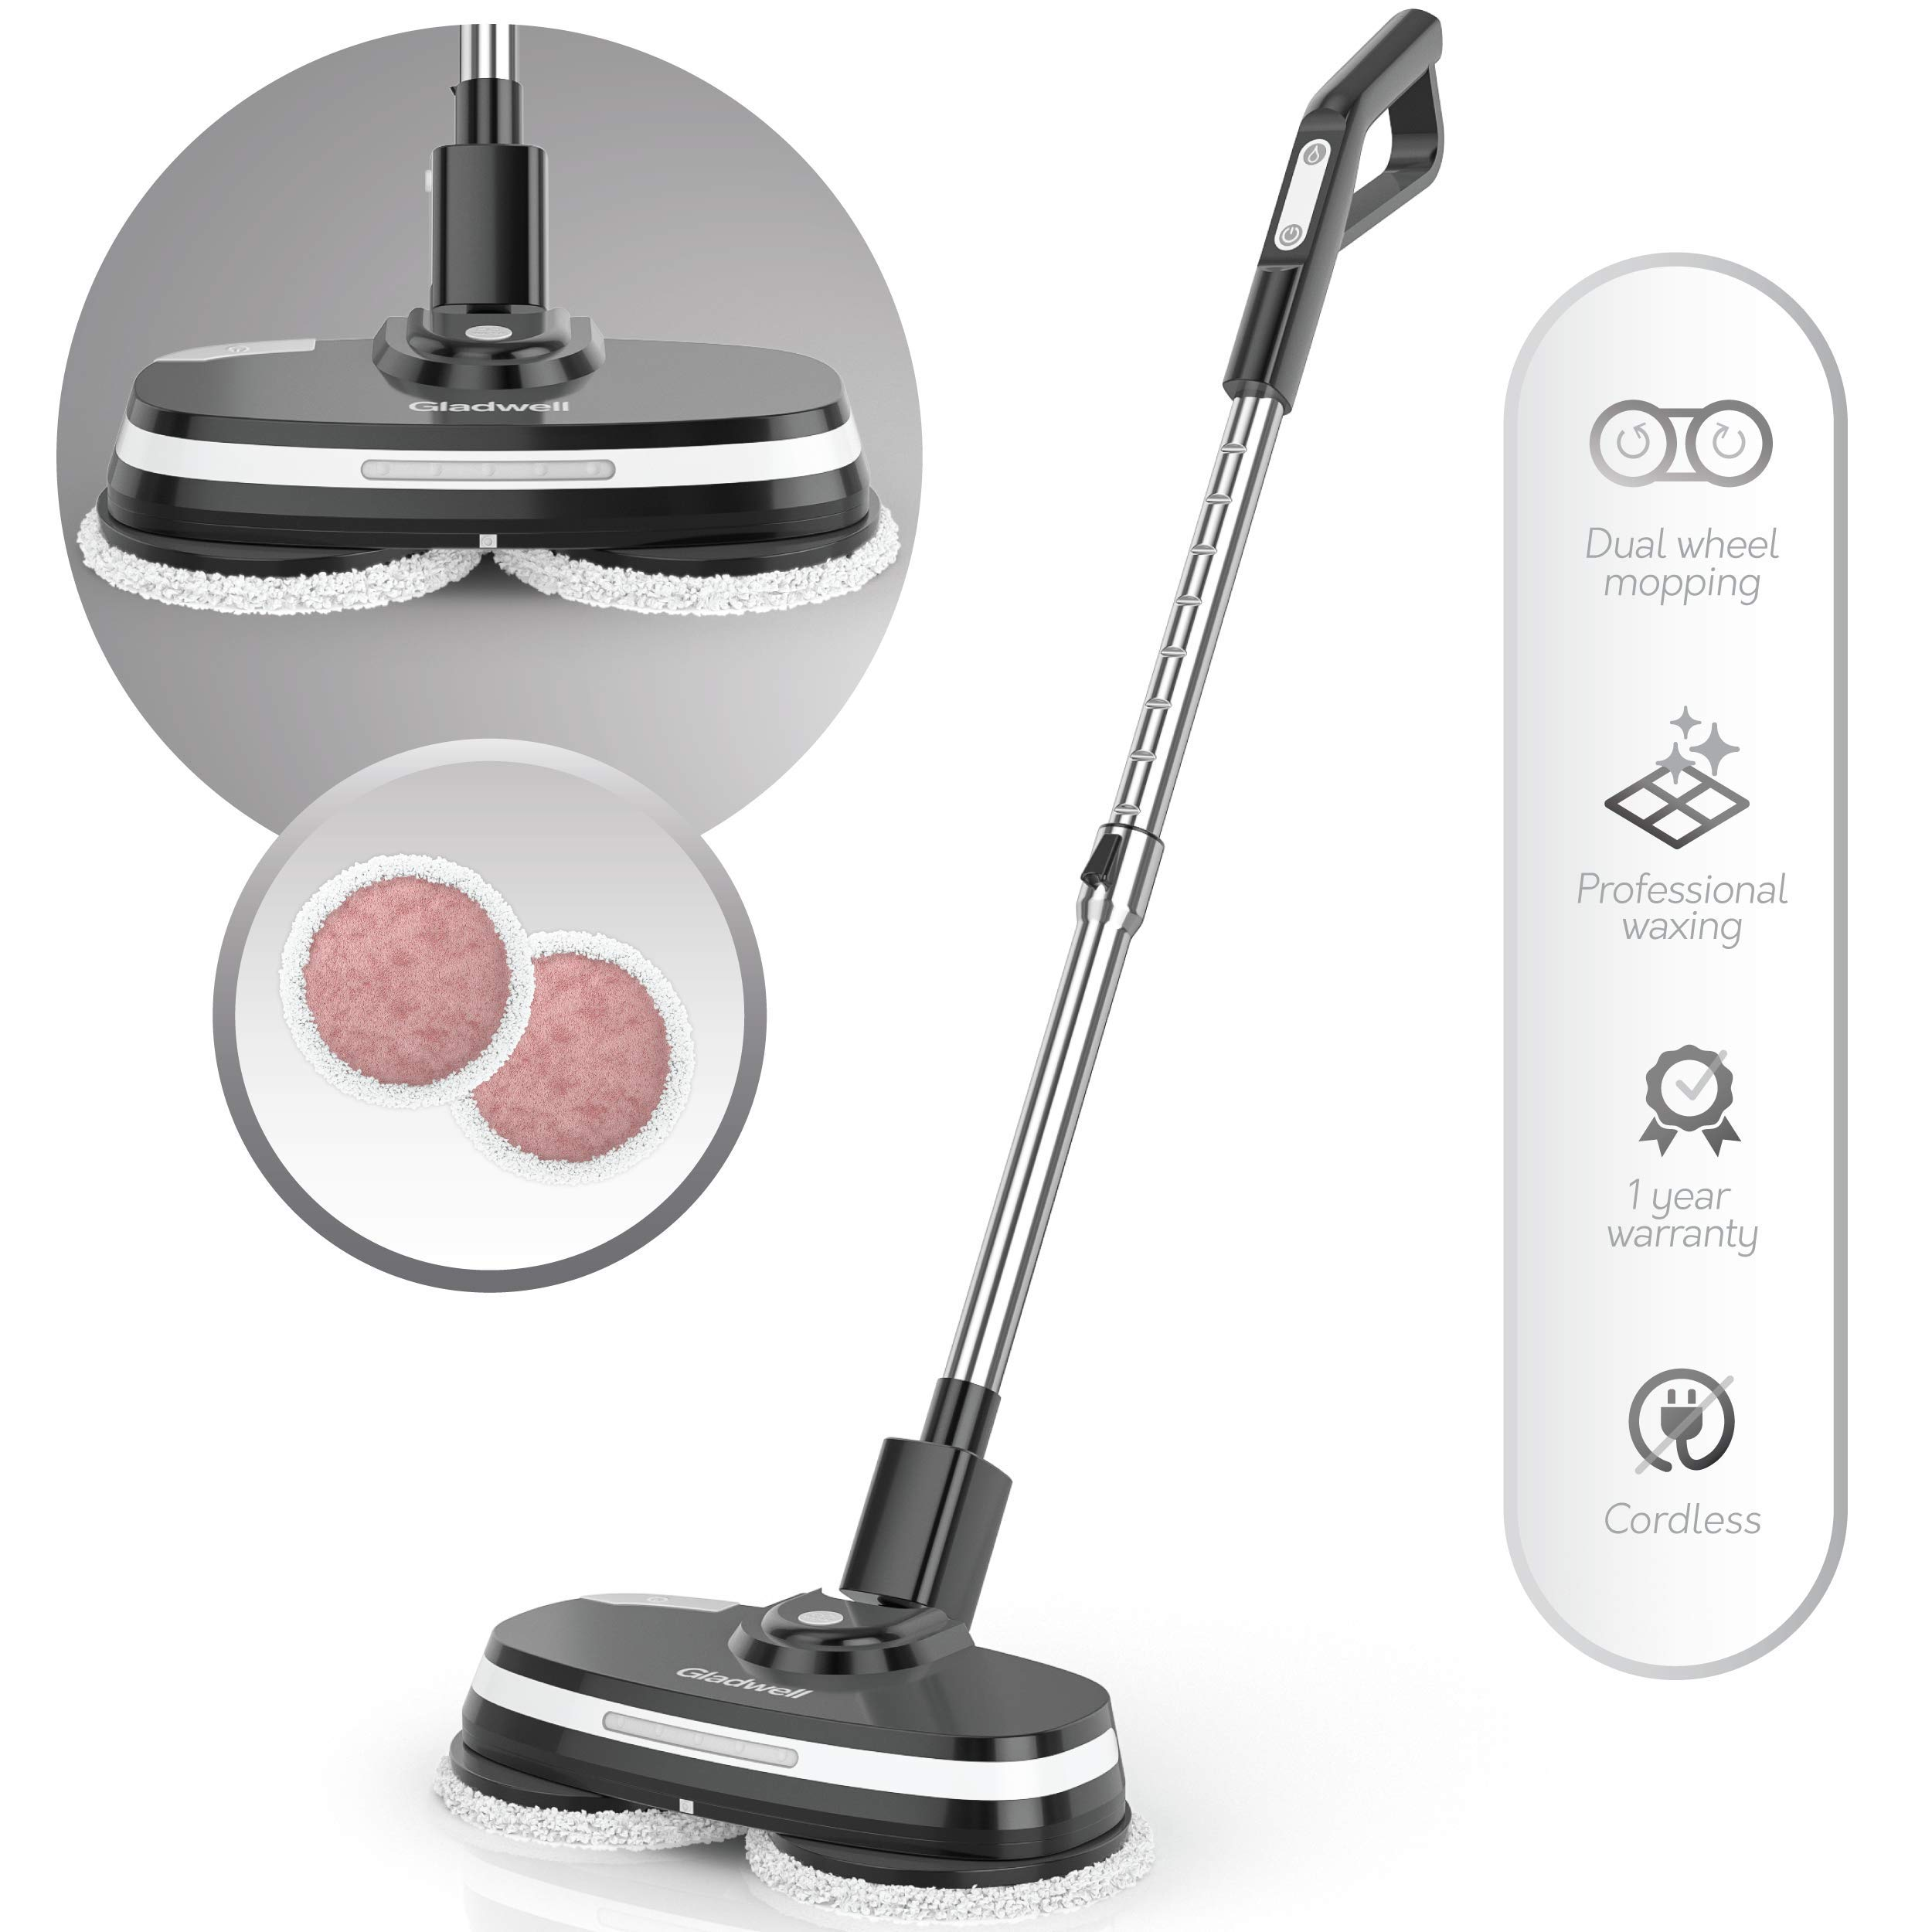 Gladwell Cordless Electric Mop - 3 In 1 Spinner, Scrubber, Waxer Quiet, Powerful Cleaner Spin Scrubber & Buffer, Polisher For Hard wood, Tile, Vinyl, Marble, Laminate Floor - 1 Year Warranty - Black by Gladwell (Image #1)